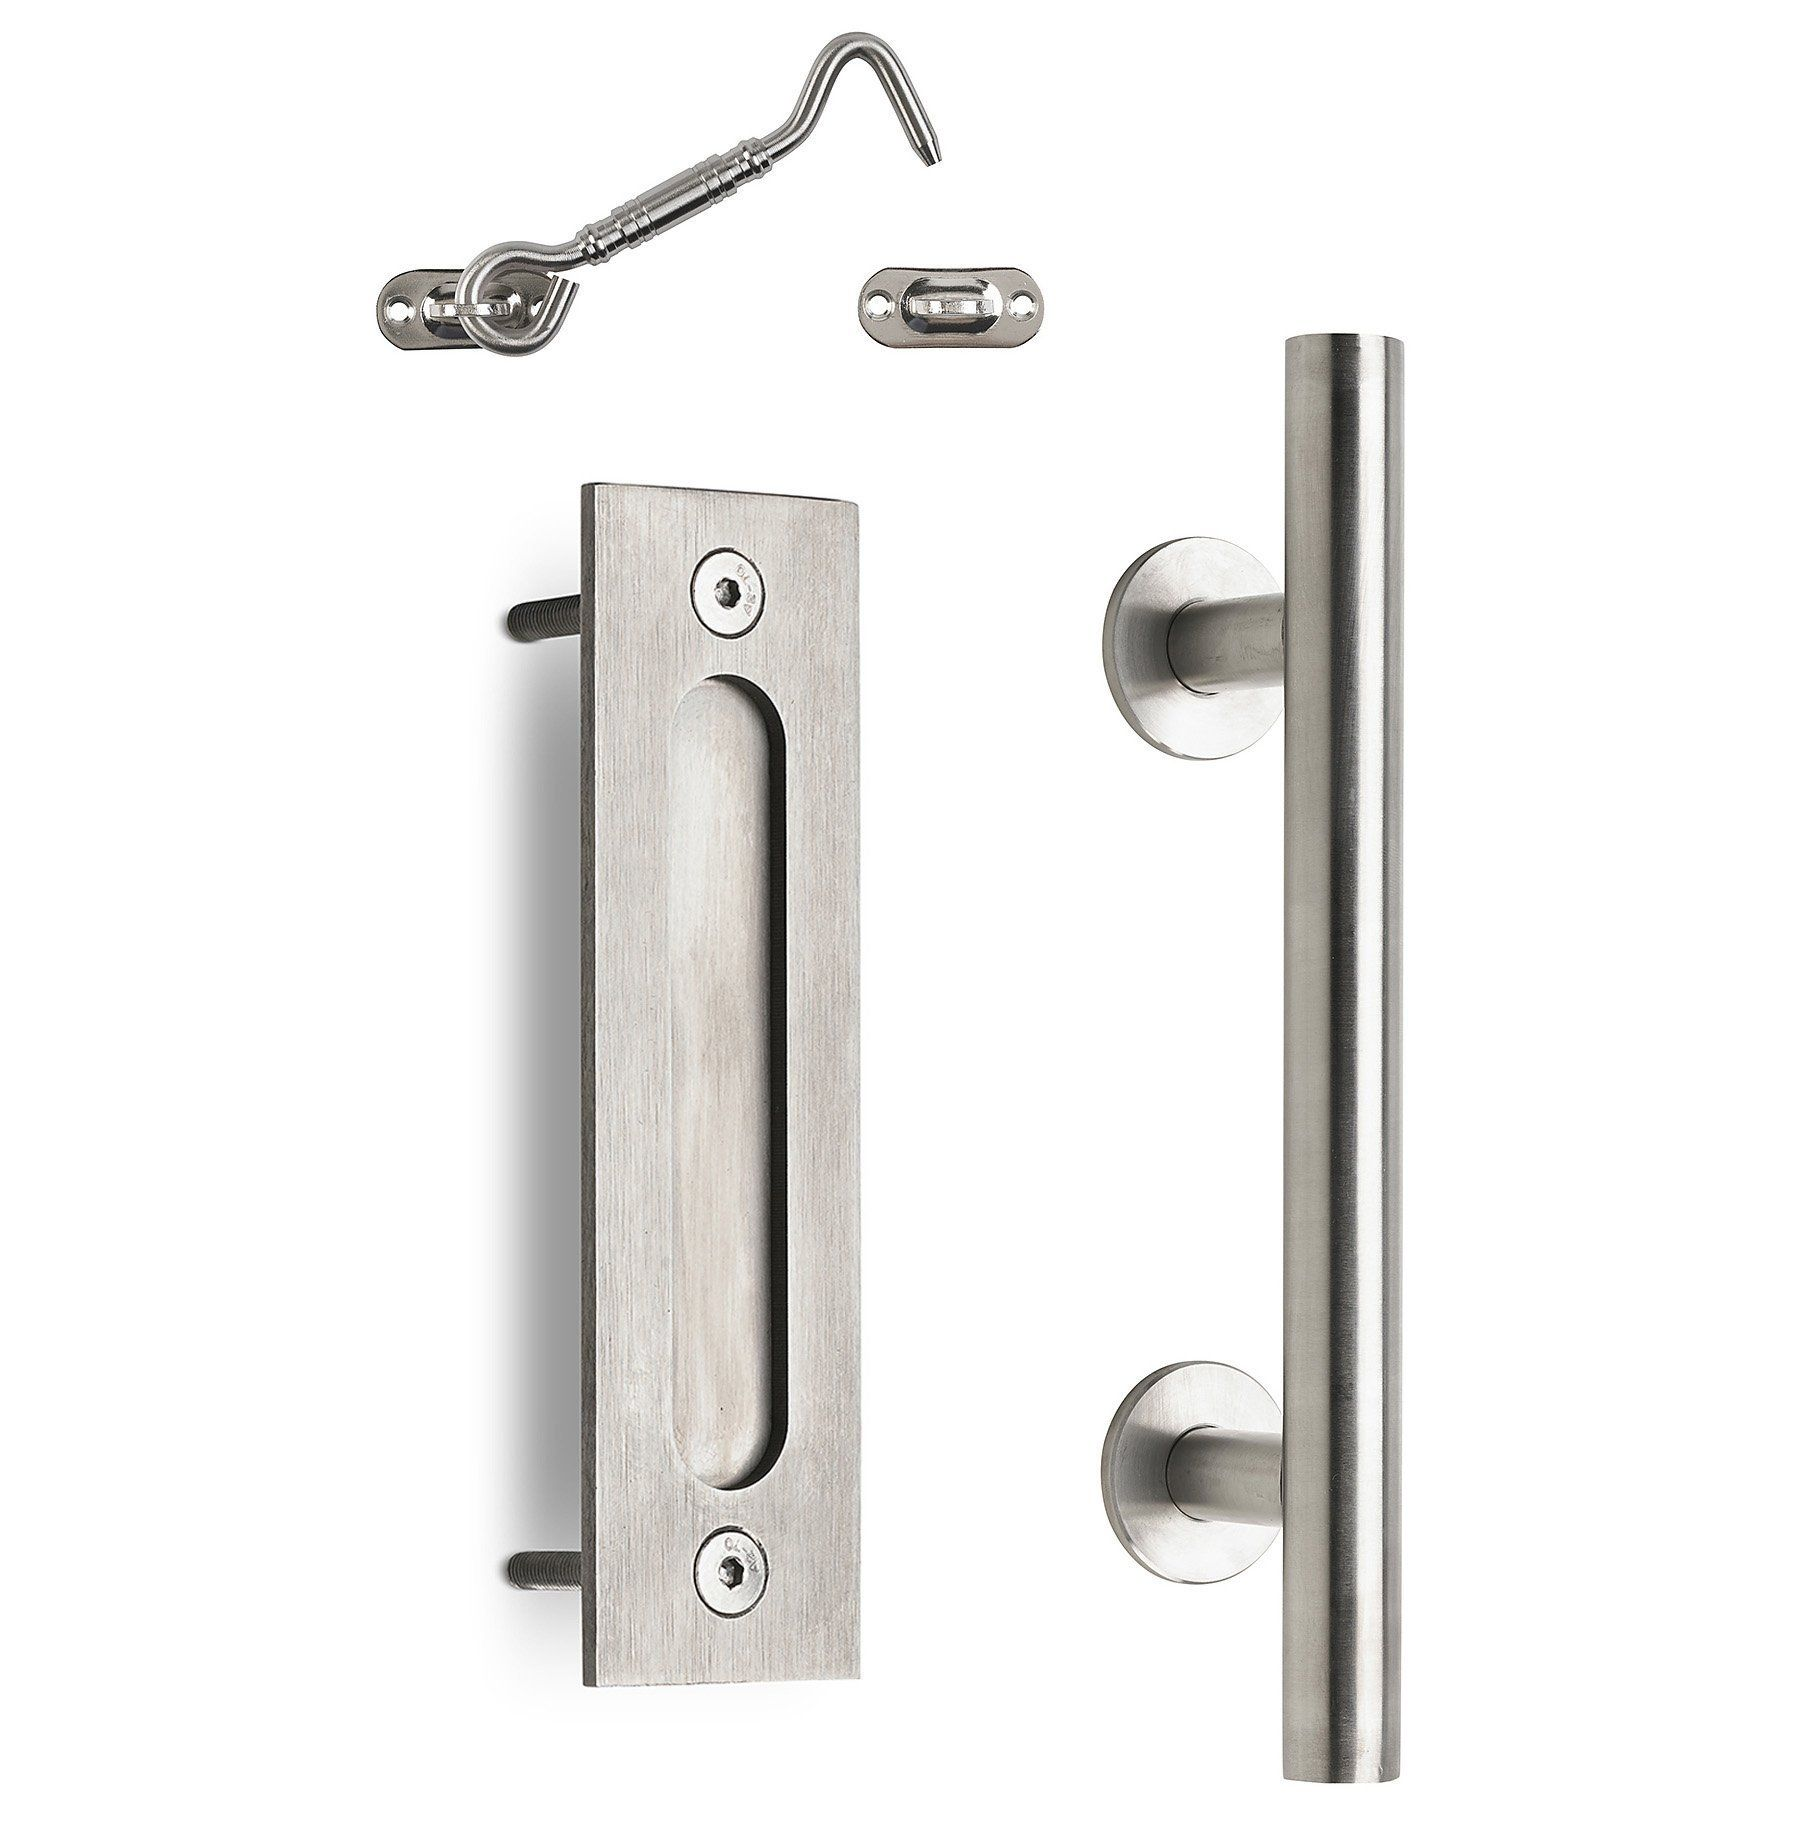 Mjc Company S Stainless Steel Sliding Barn Door Handle Pull Flush Combo Privacy Latch Coordinates Seamlessly Barn Door Handles Barn Door Latch Door Handles